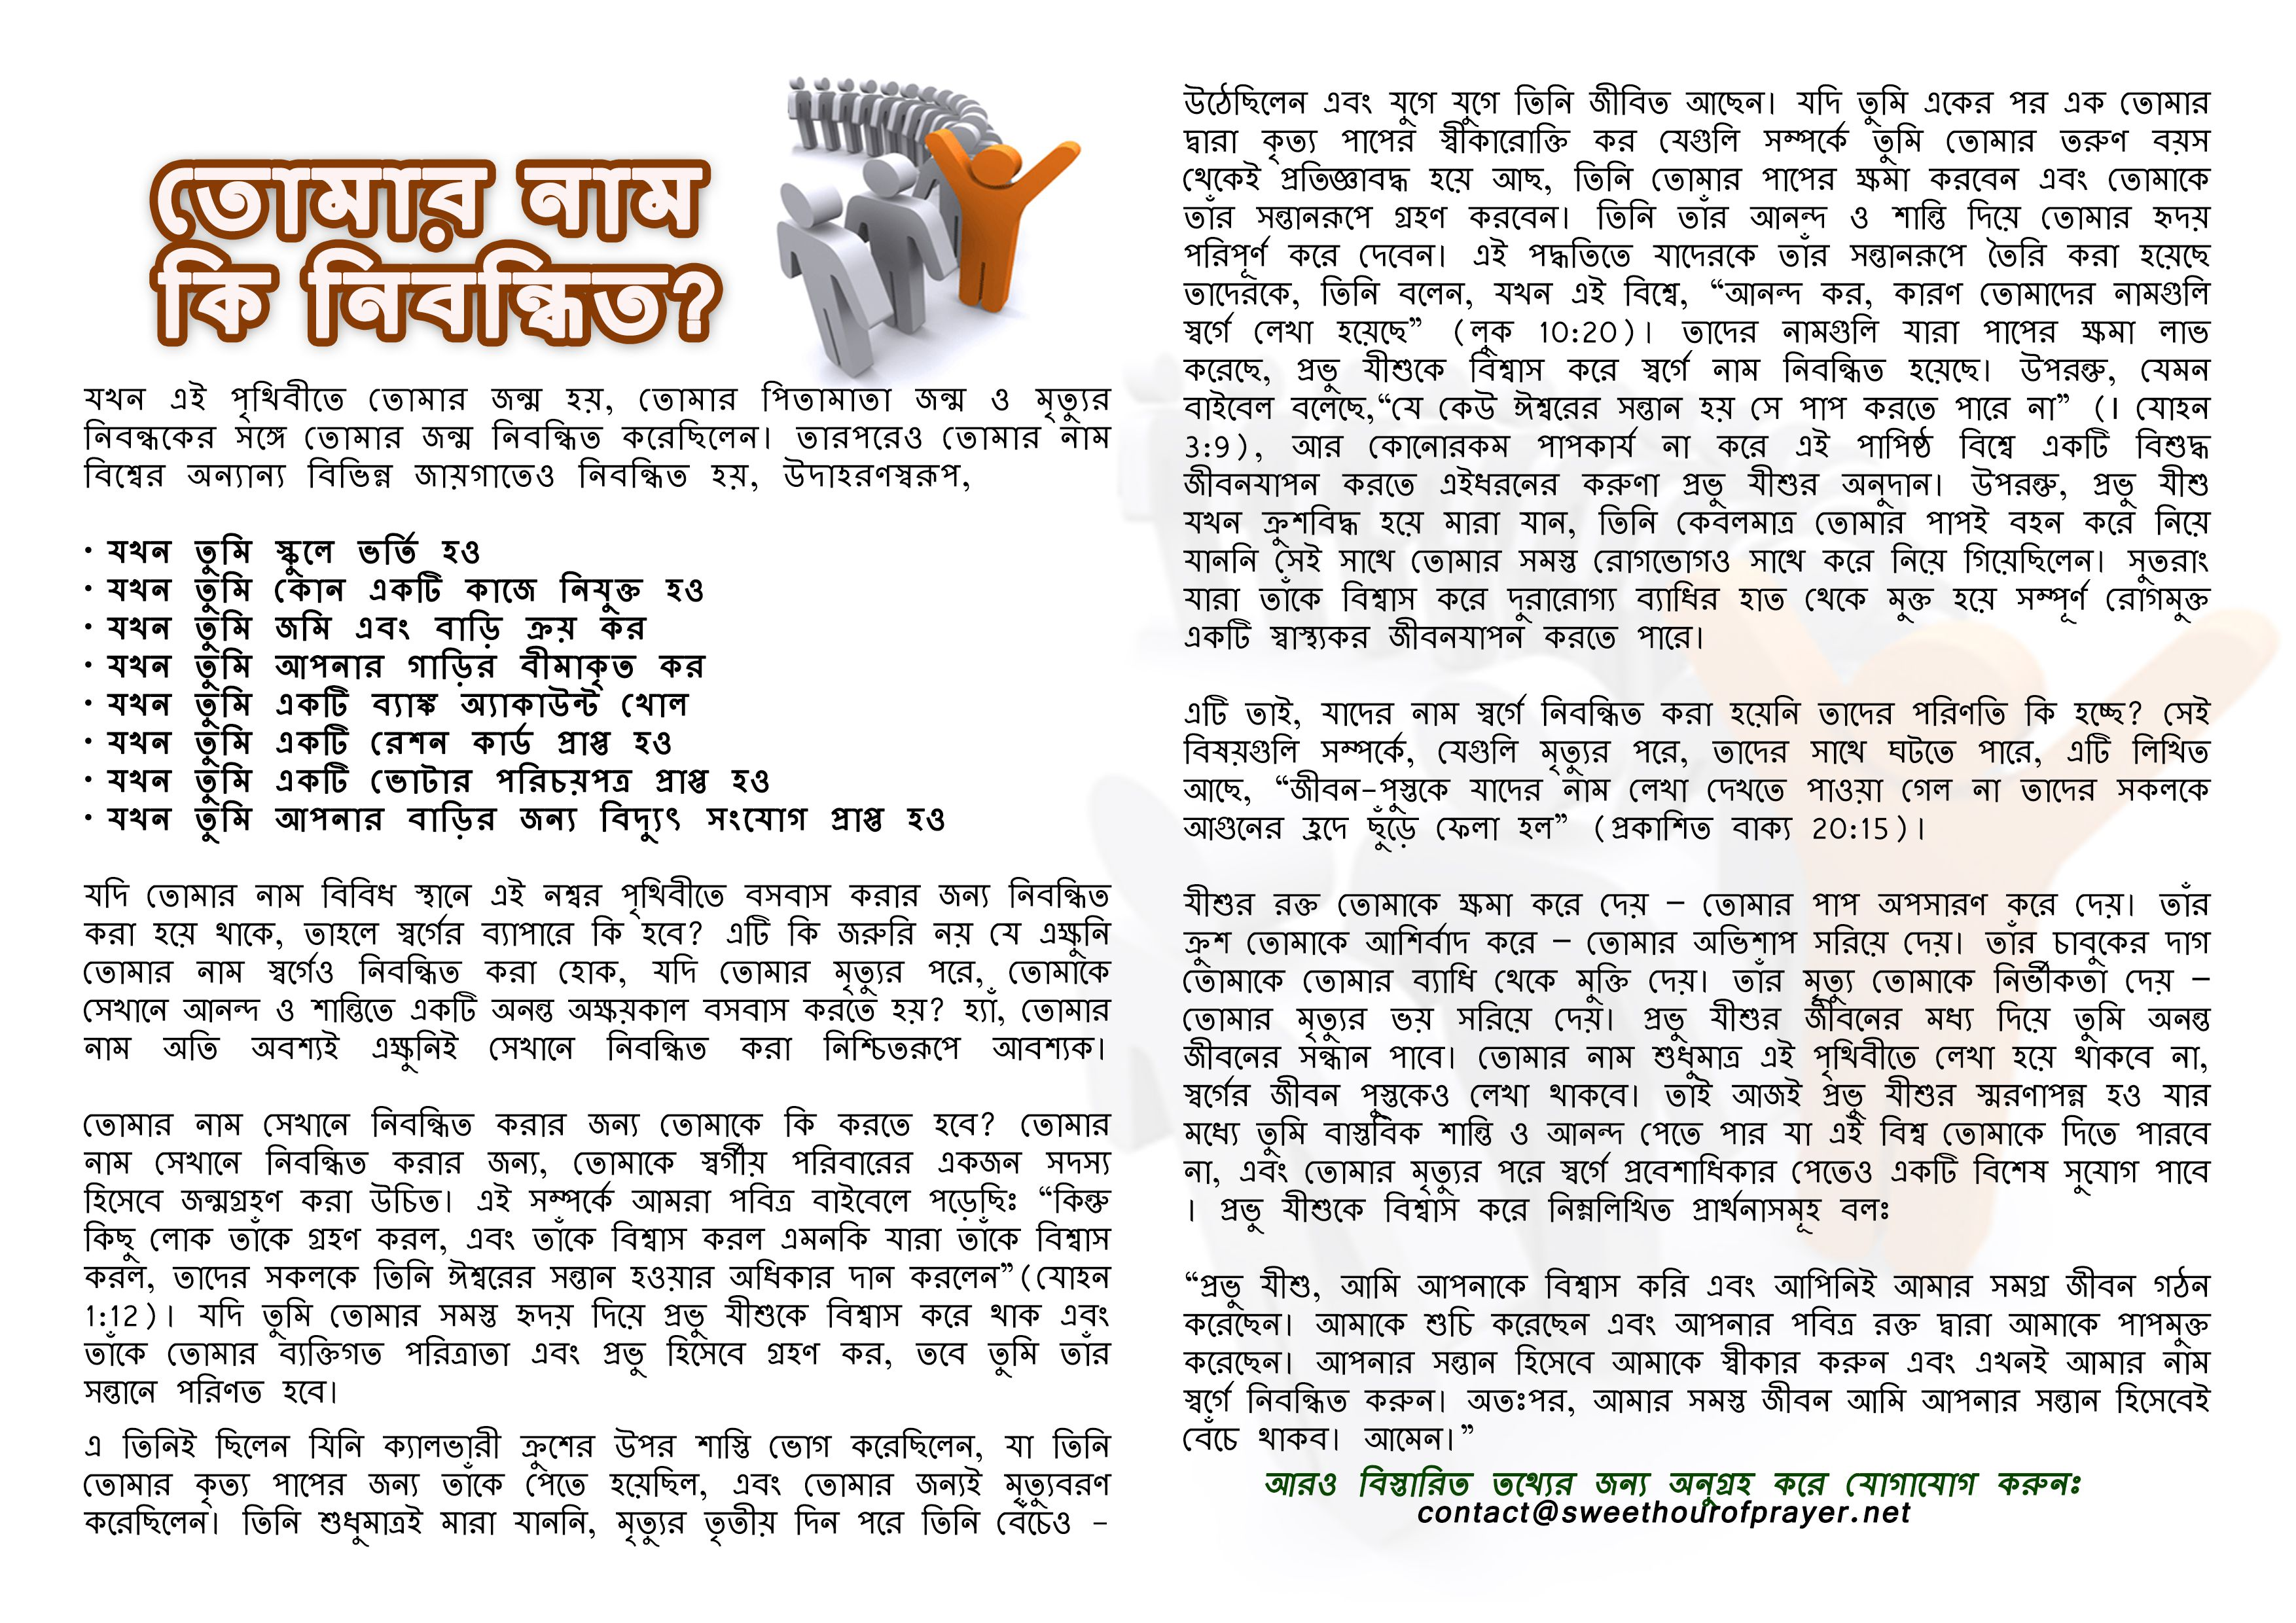 Is your name registered Bengali